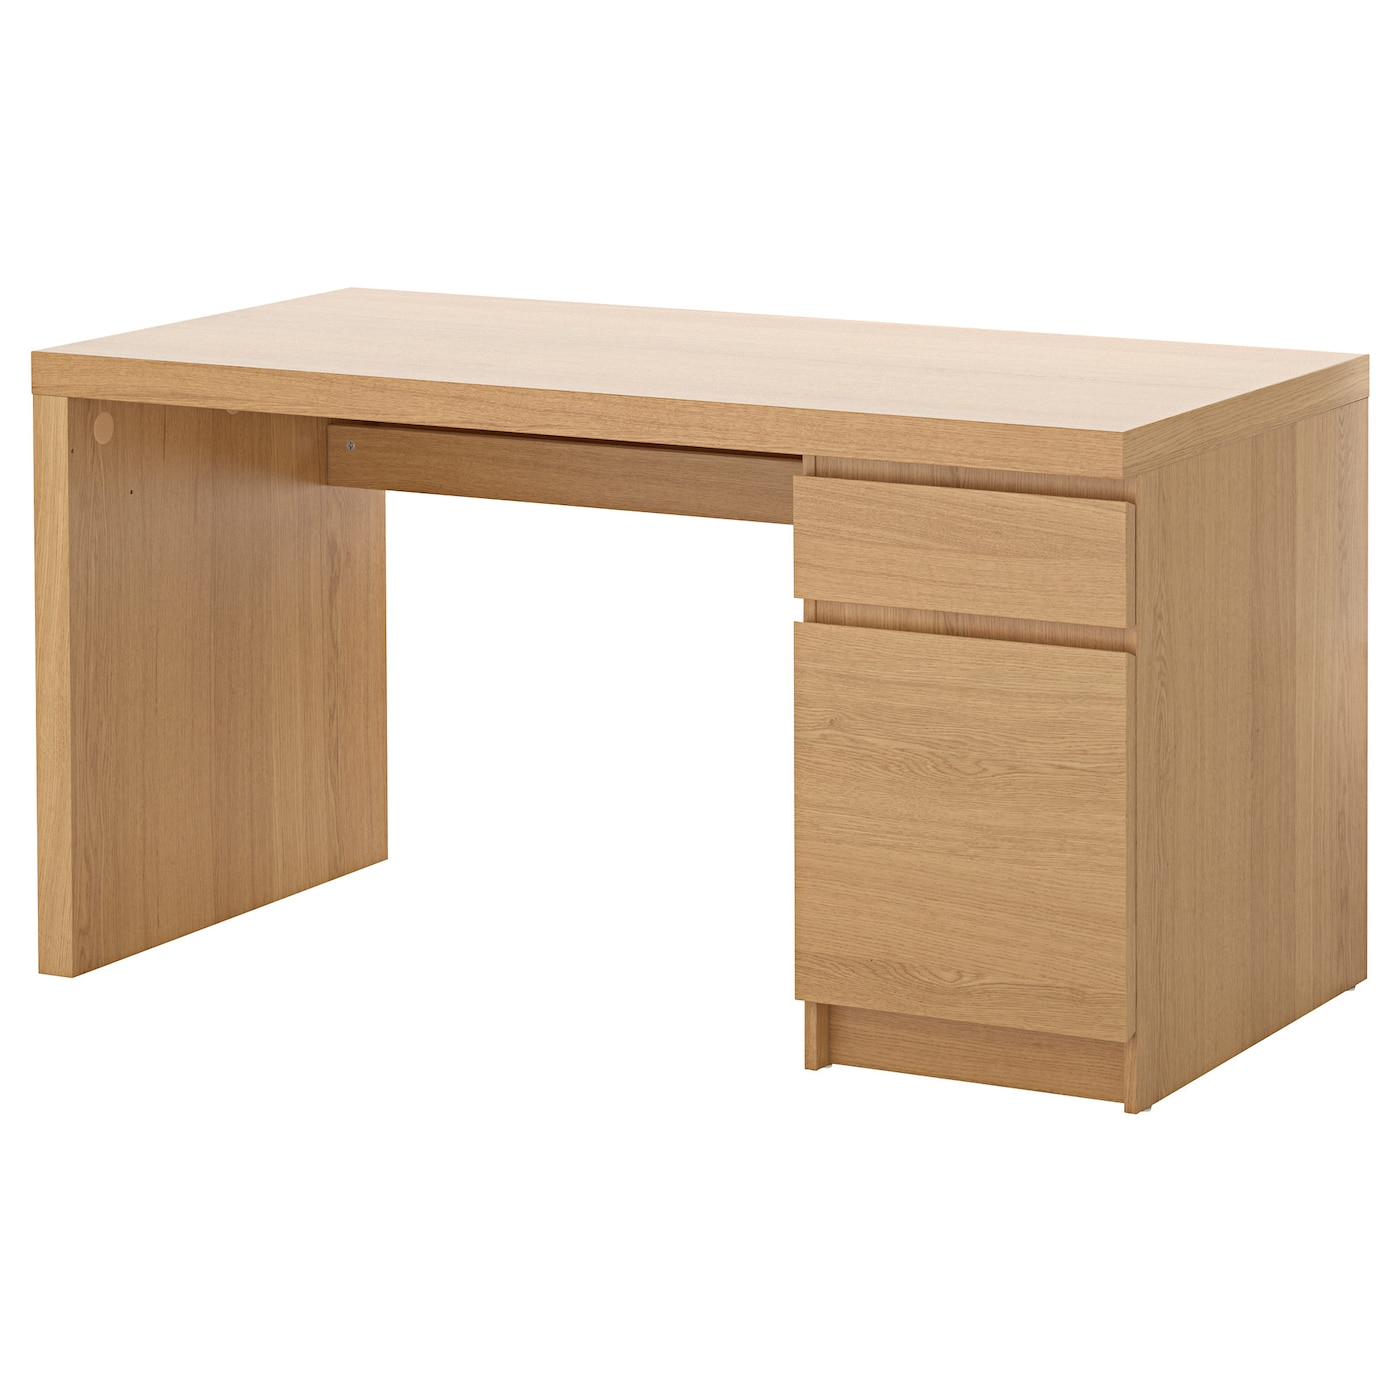 IKEA MALM desk Can be placed in the middle of a room because the back is finished.